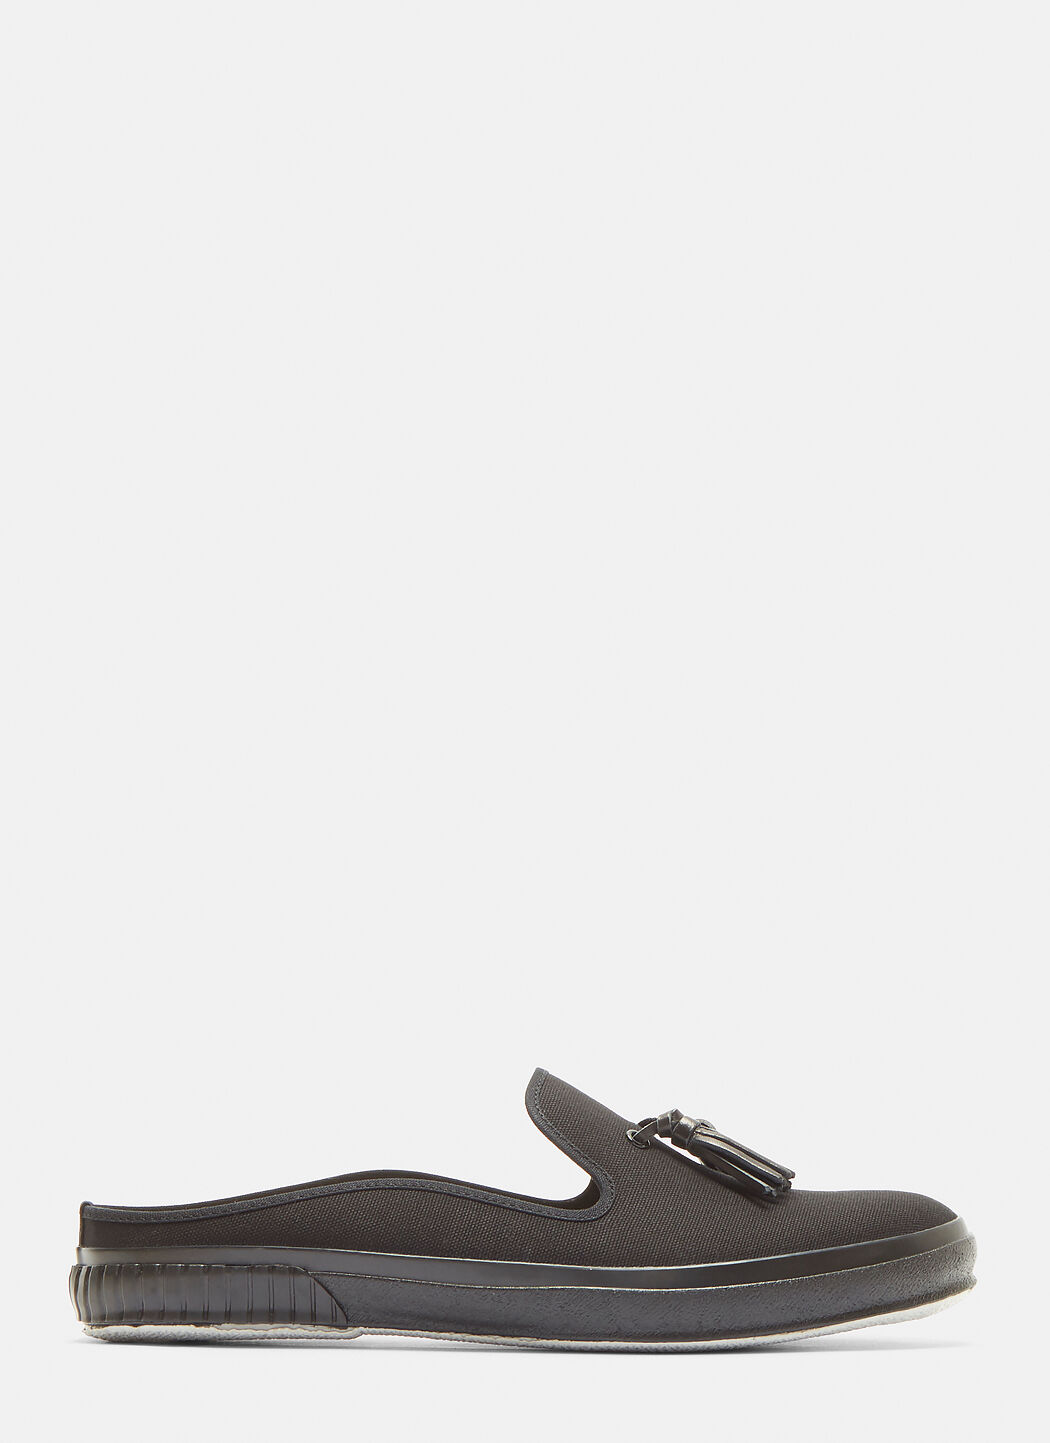 HENDER SCHEME Leather Tassel Plimsoles in Black